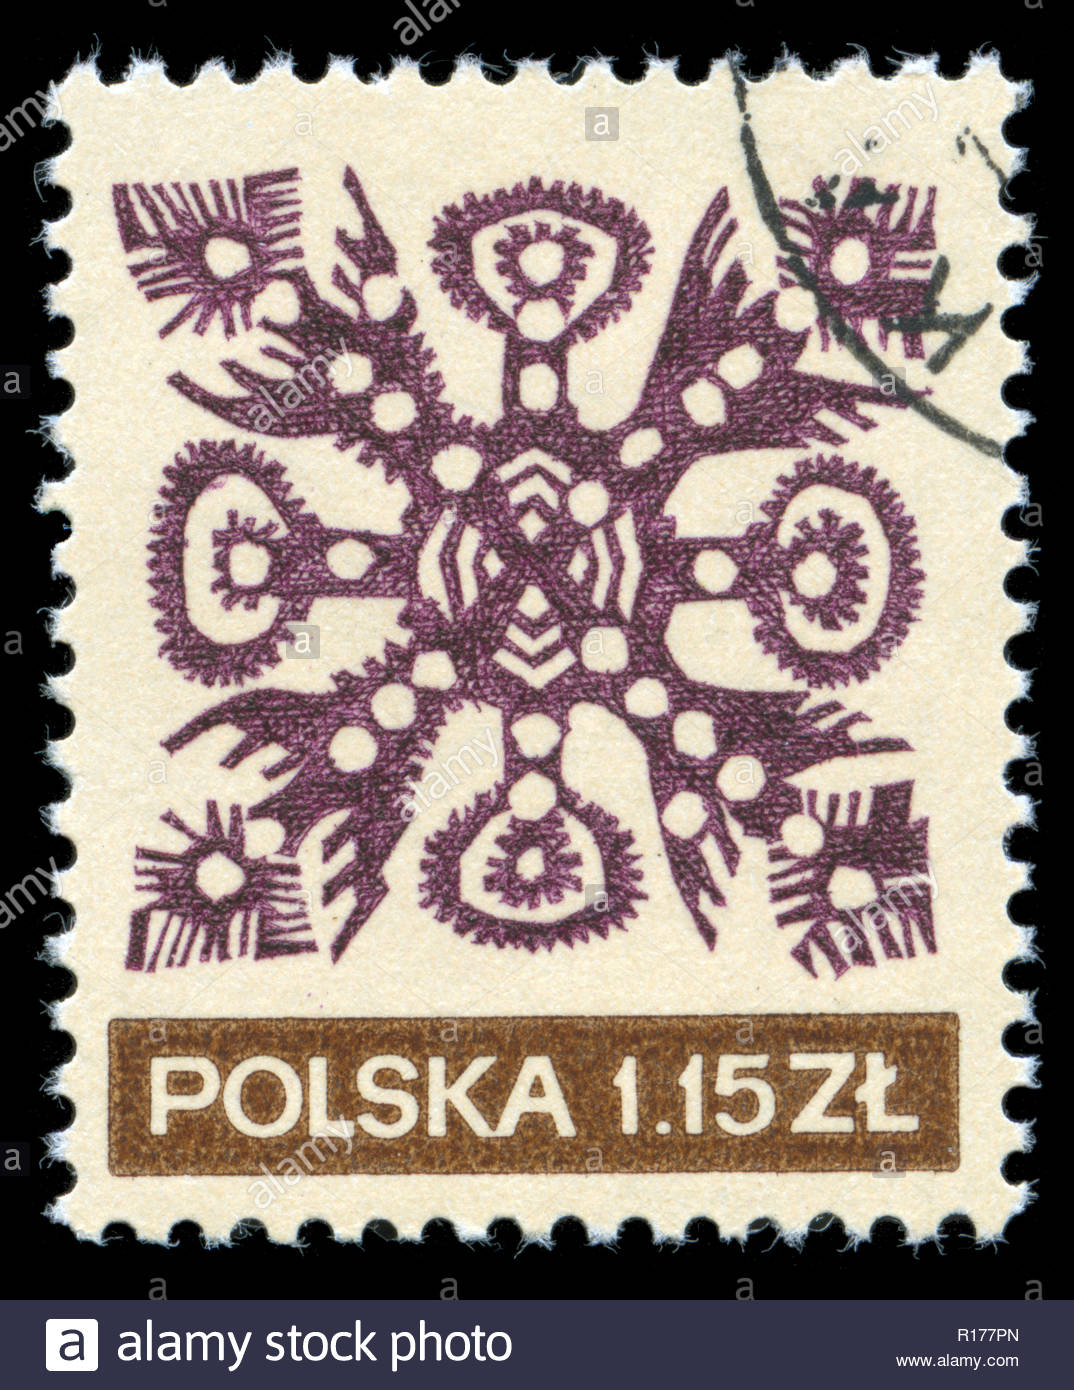 Postage stamp from the Poland in the Folk Art series issued in 1971 - Stock Image